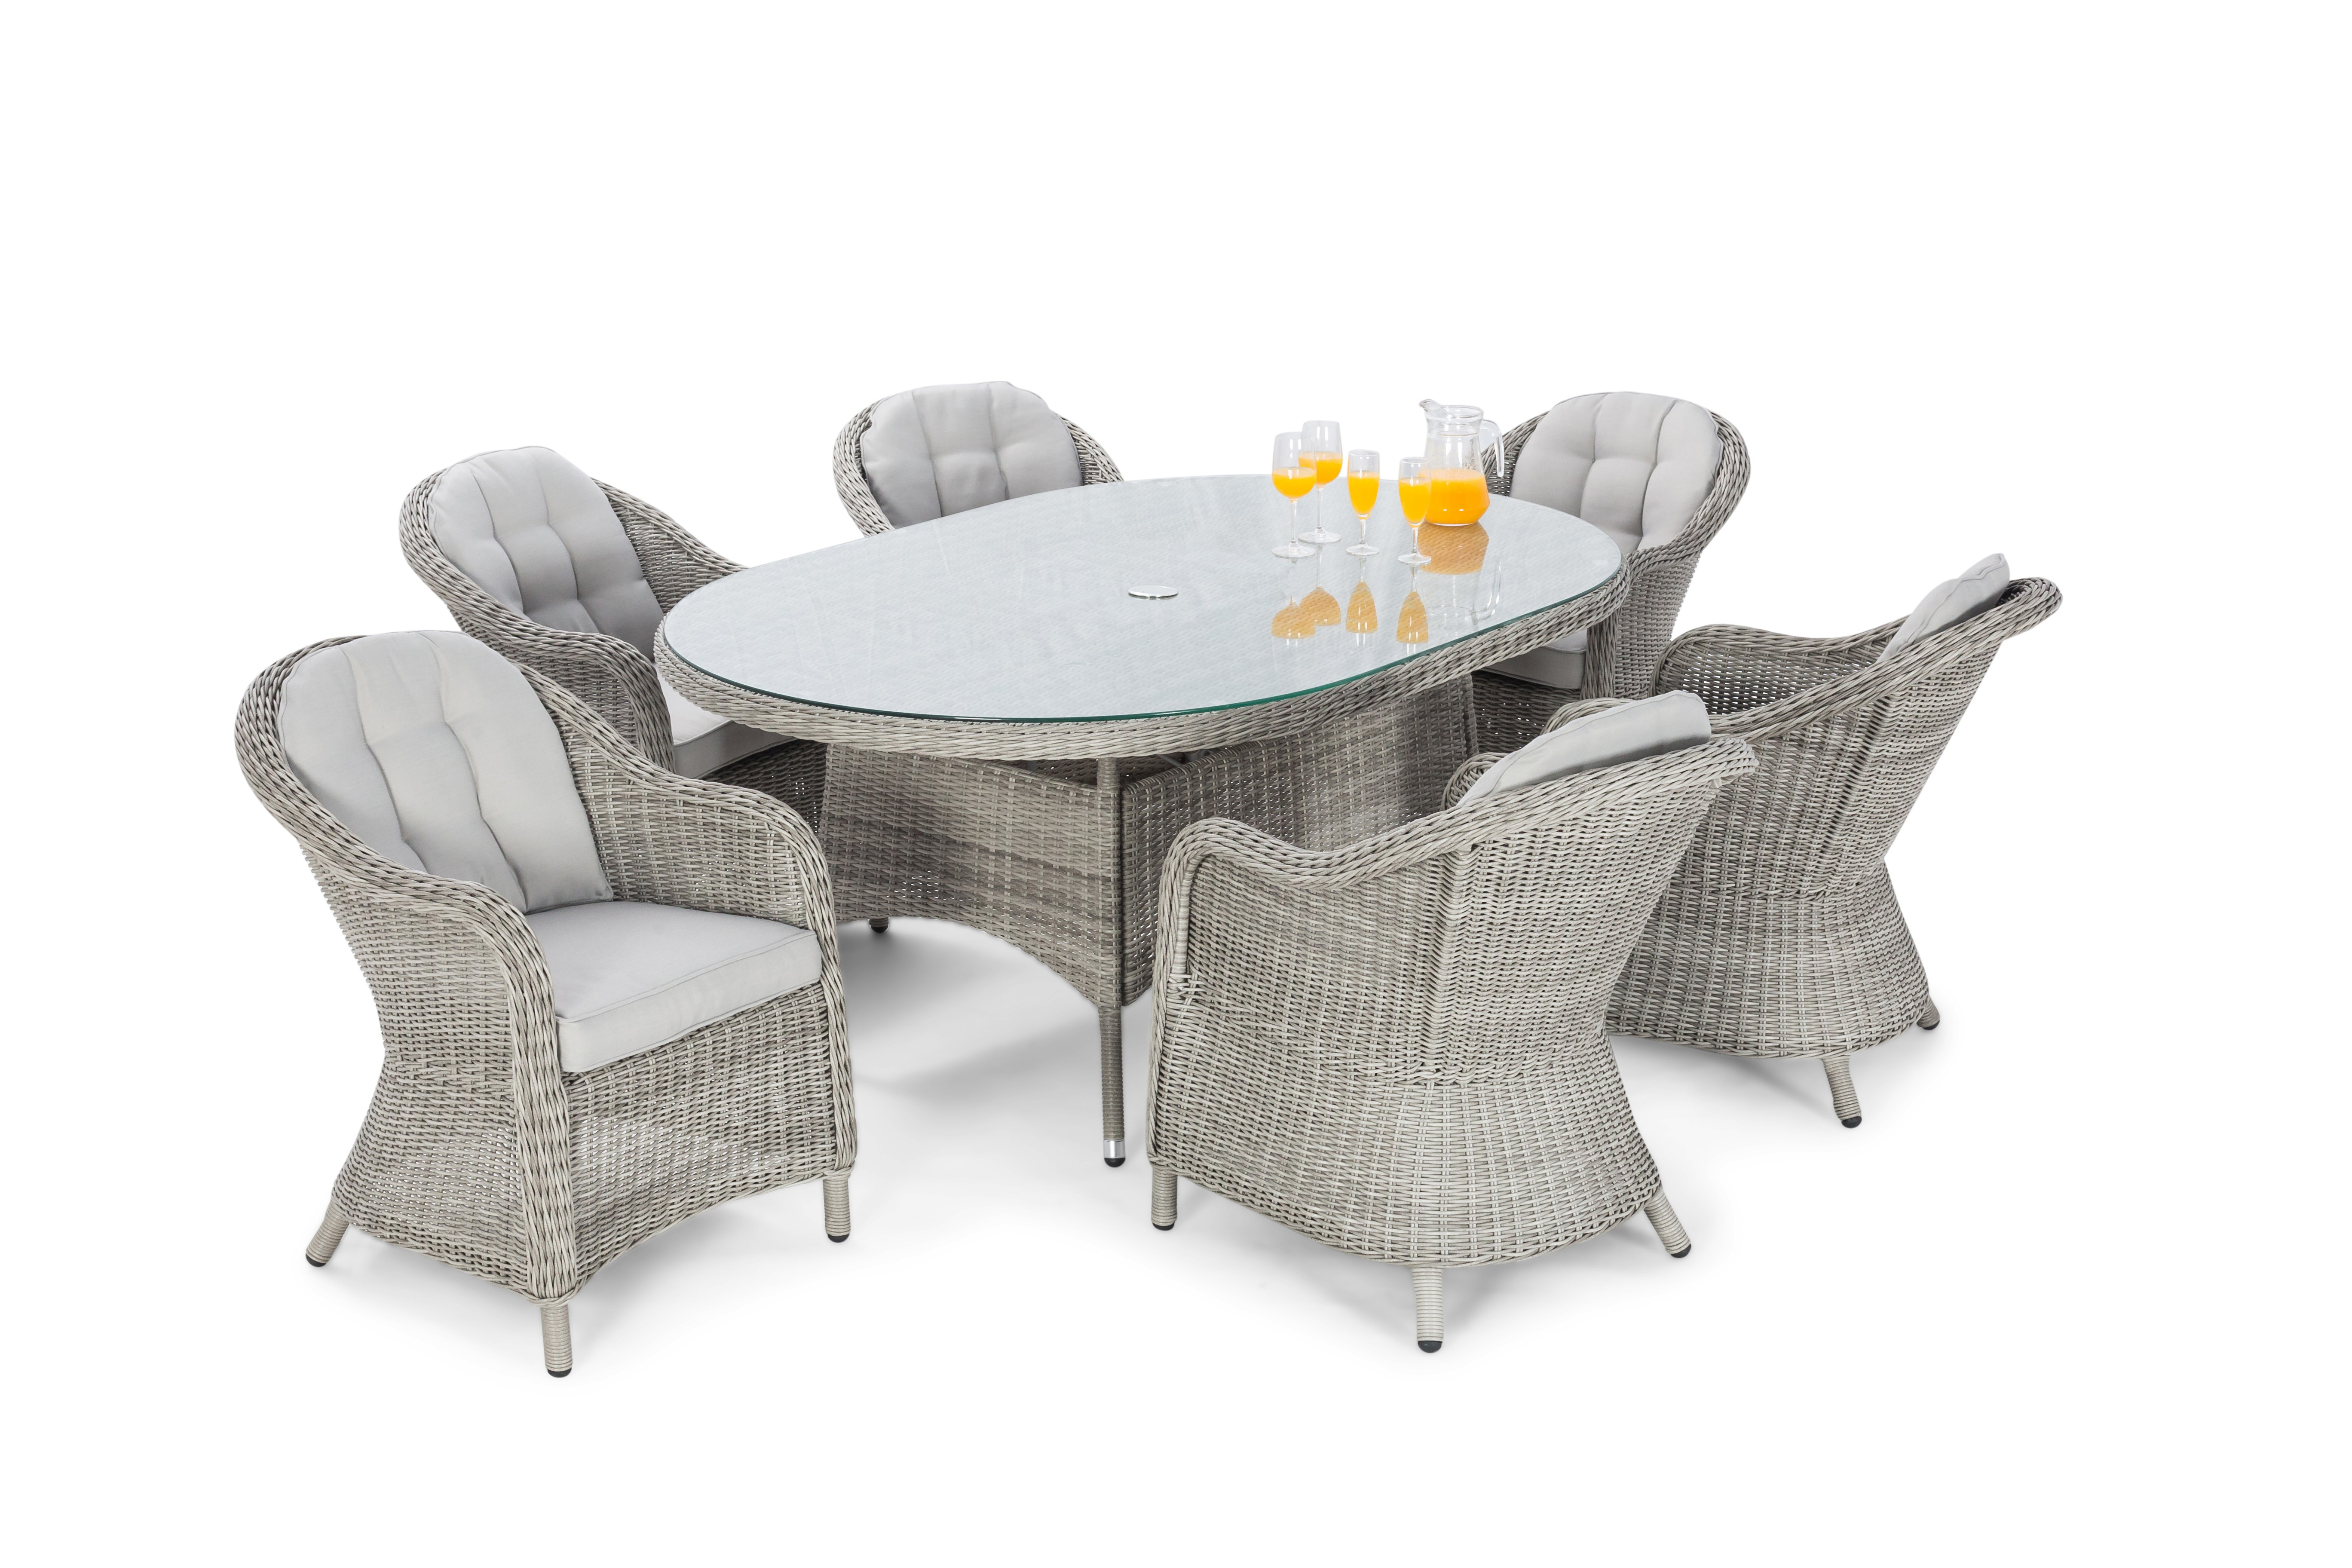 Maze Rattan Oxford 6 Seat Oval Dining Set With Rounded Chairs